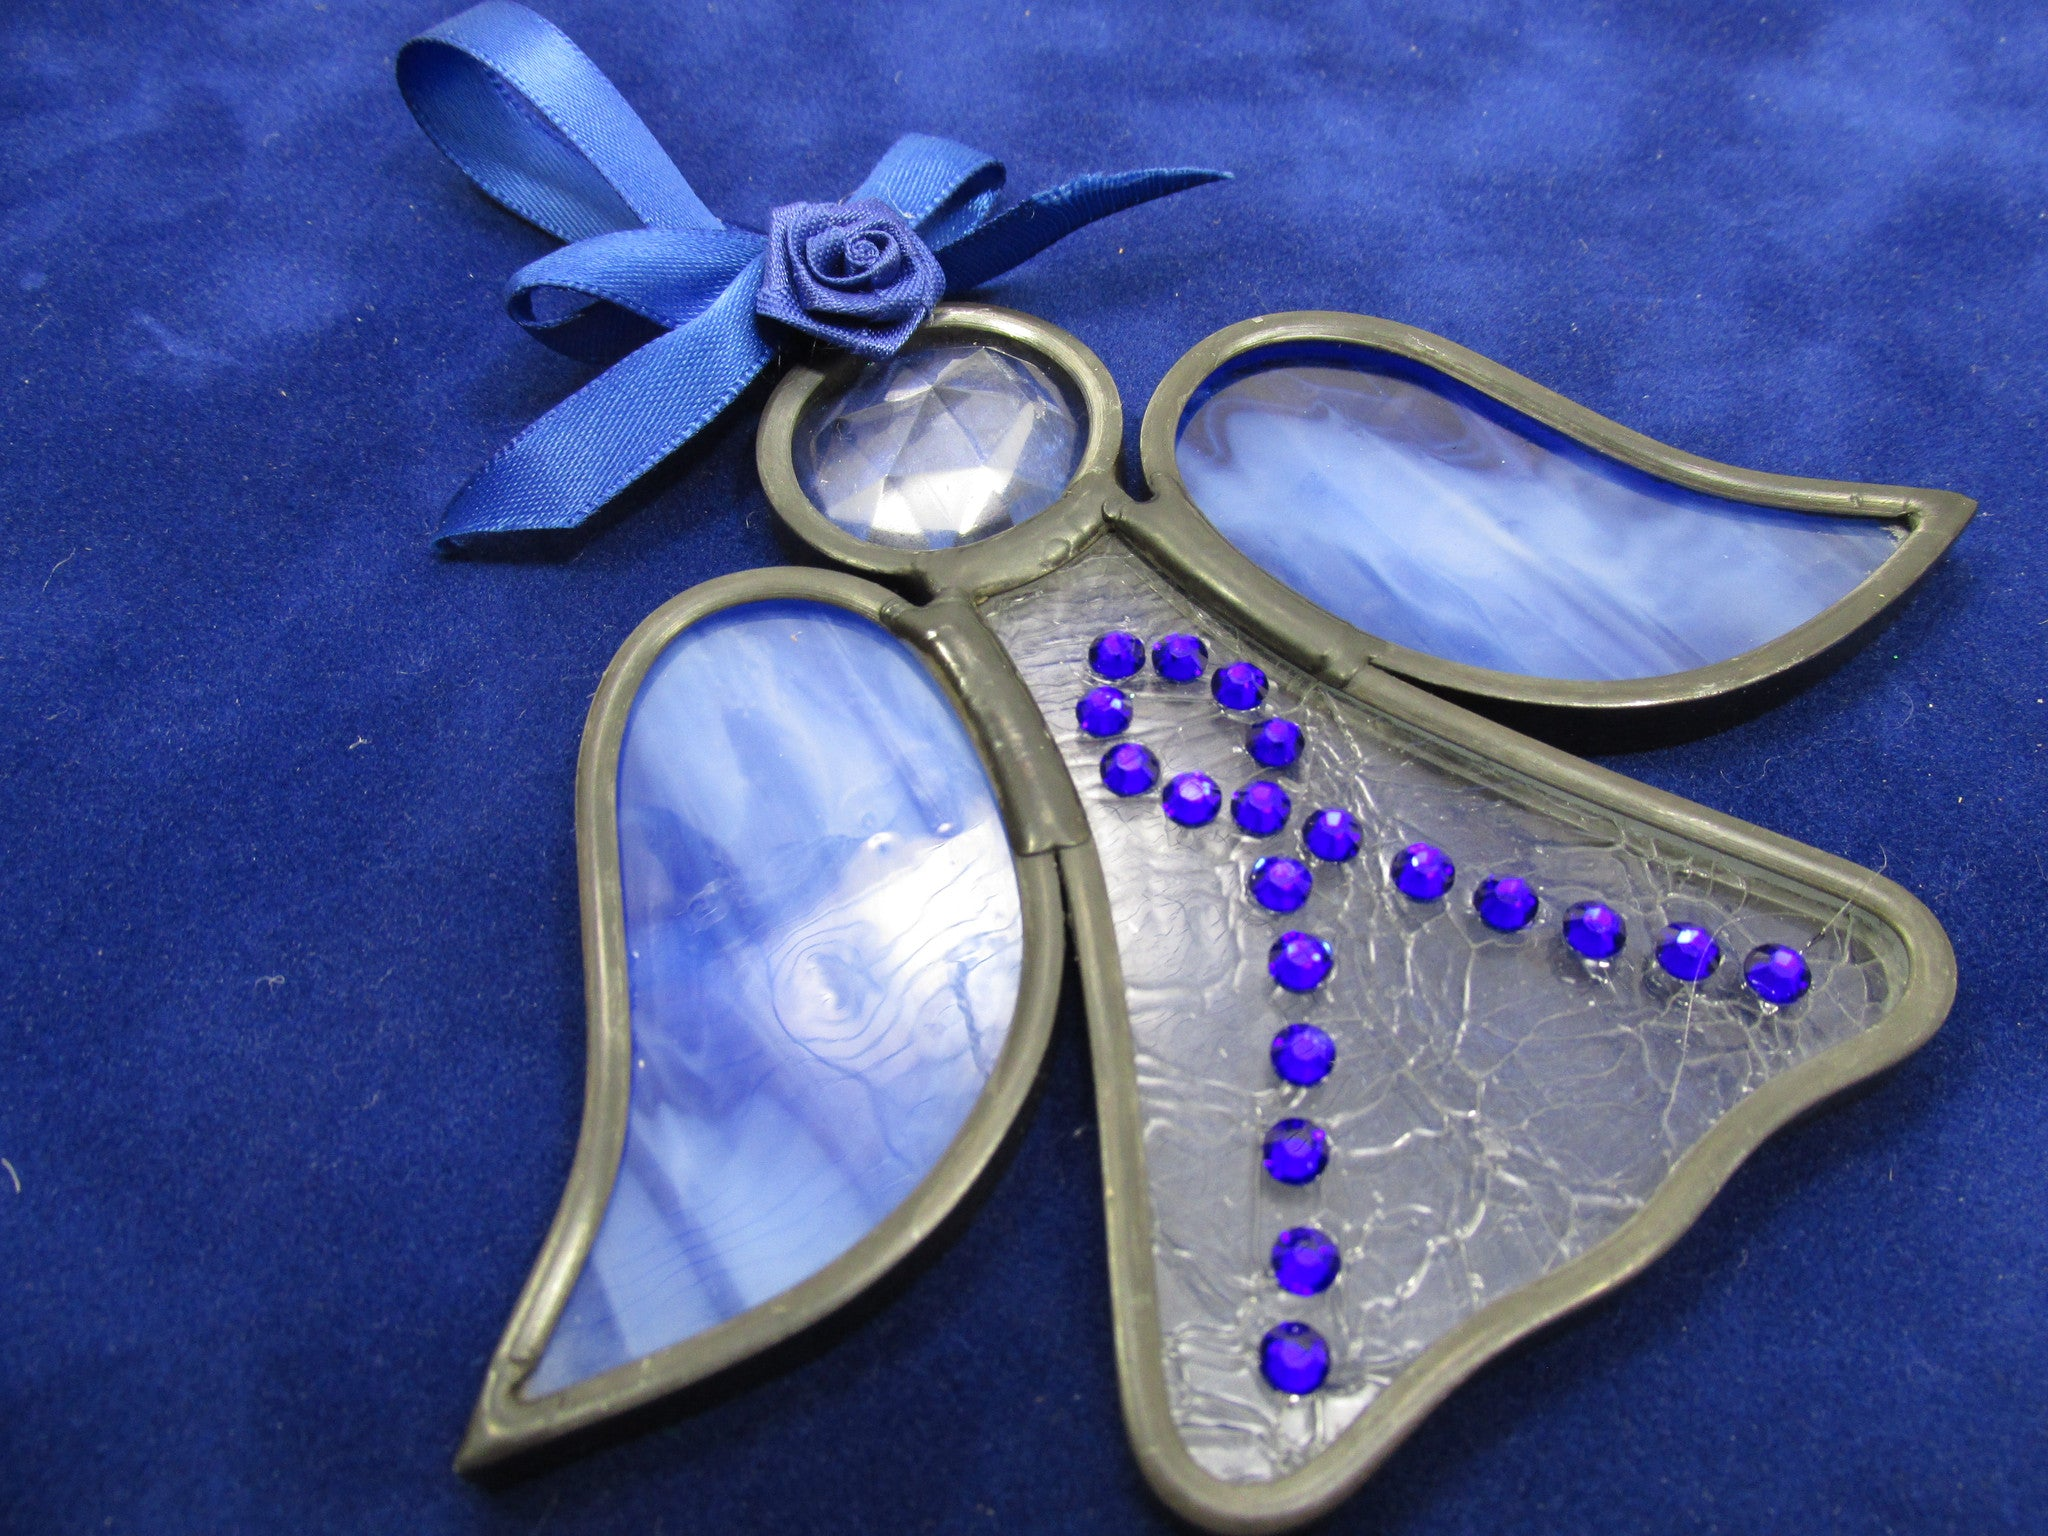 Blue Domestic Abuse Awareness Angel Stained Glass Ornament or Suncatcher - Odyssey Creations